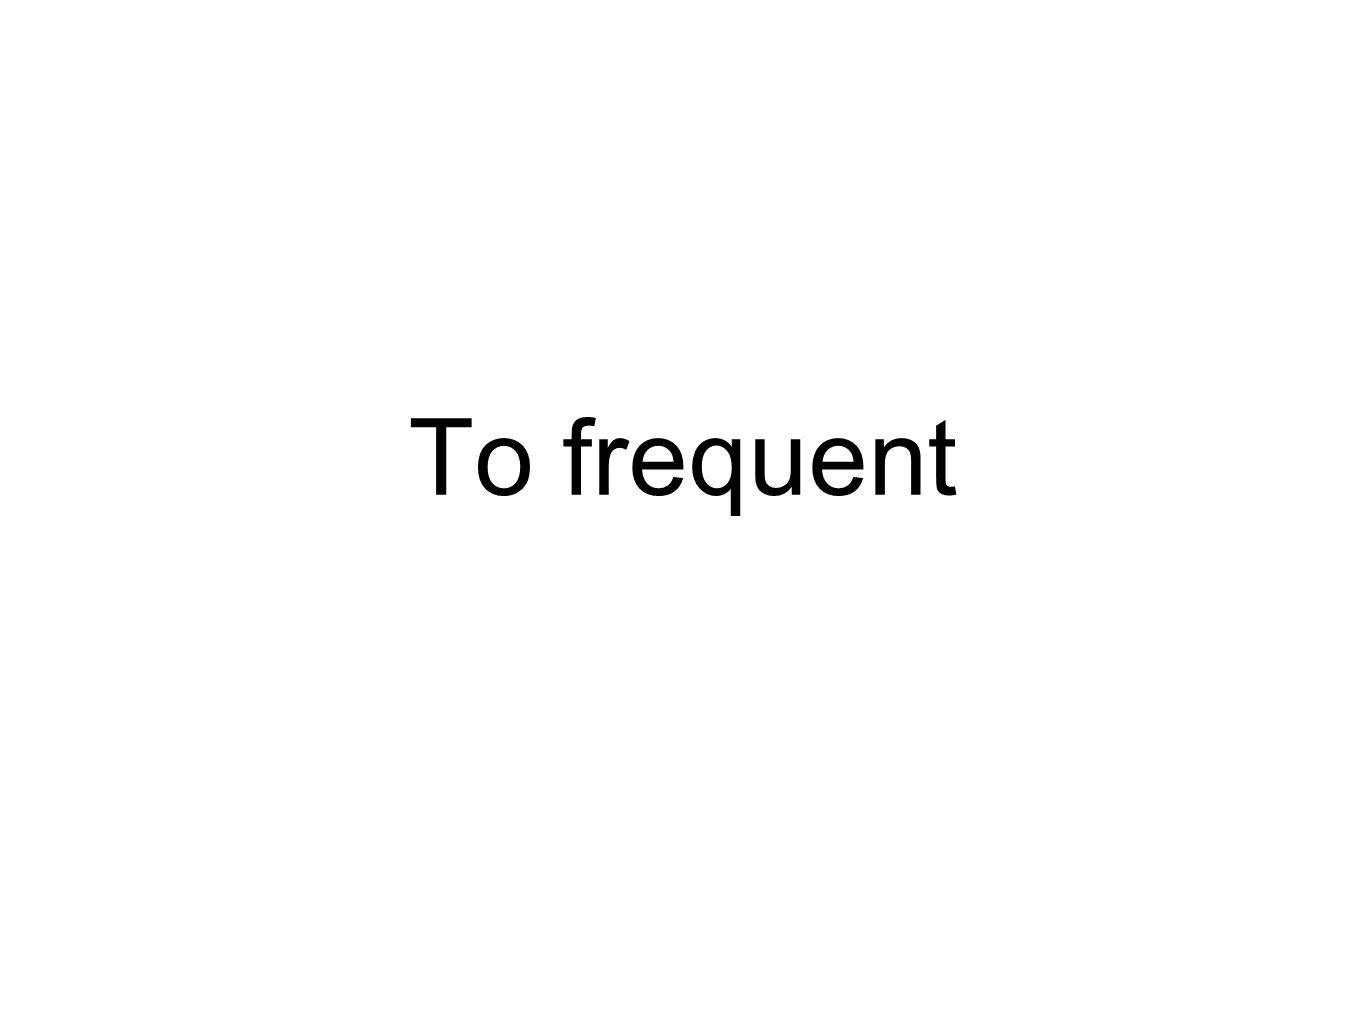 To frequent